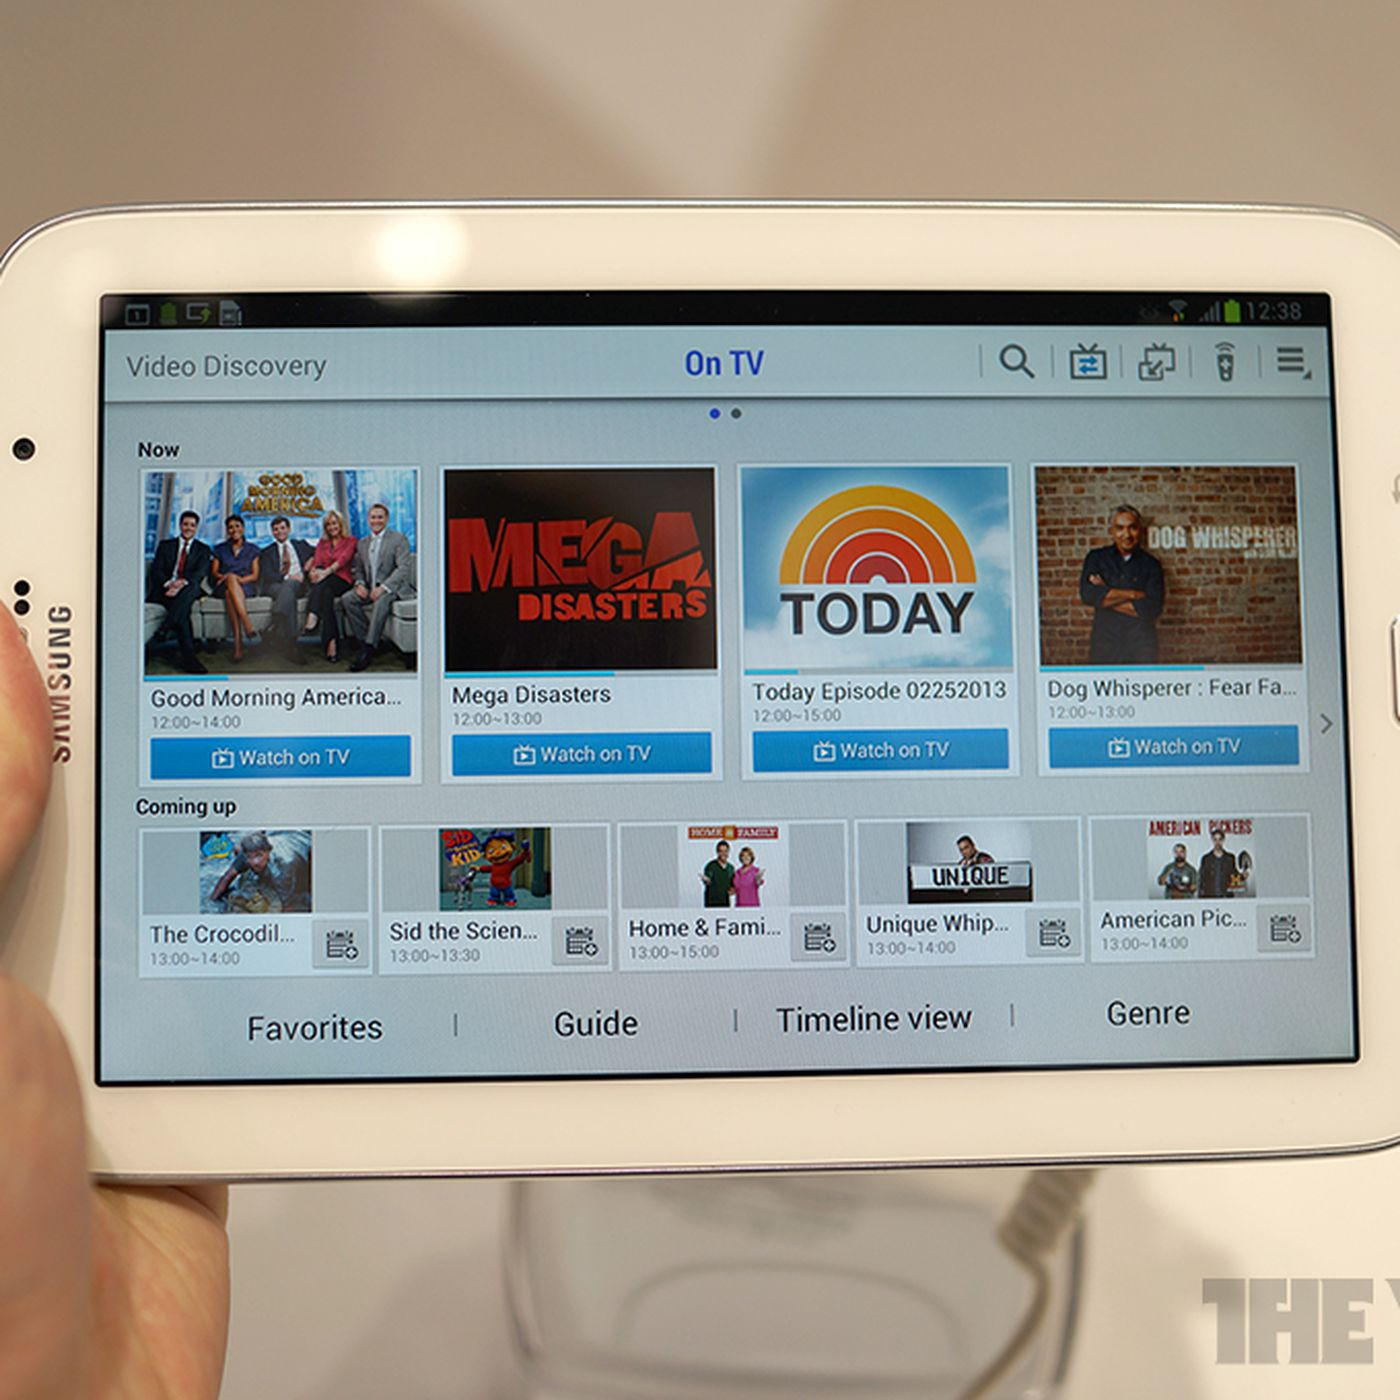 Samsung's Video Discovery app turns your tablet into a super-sized